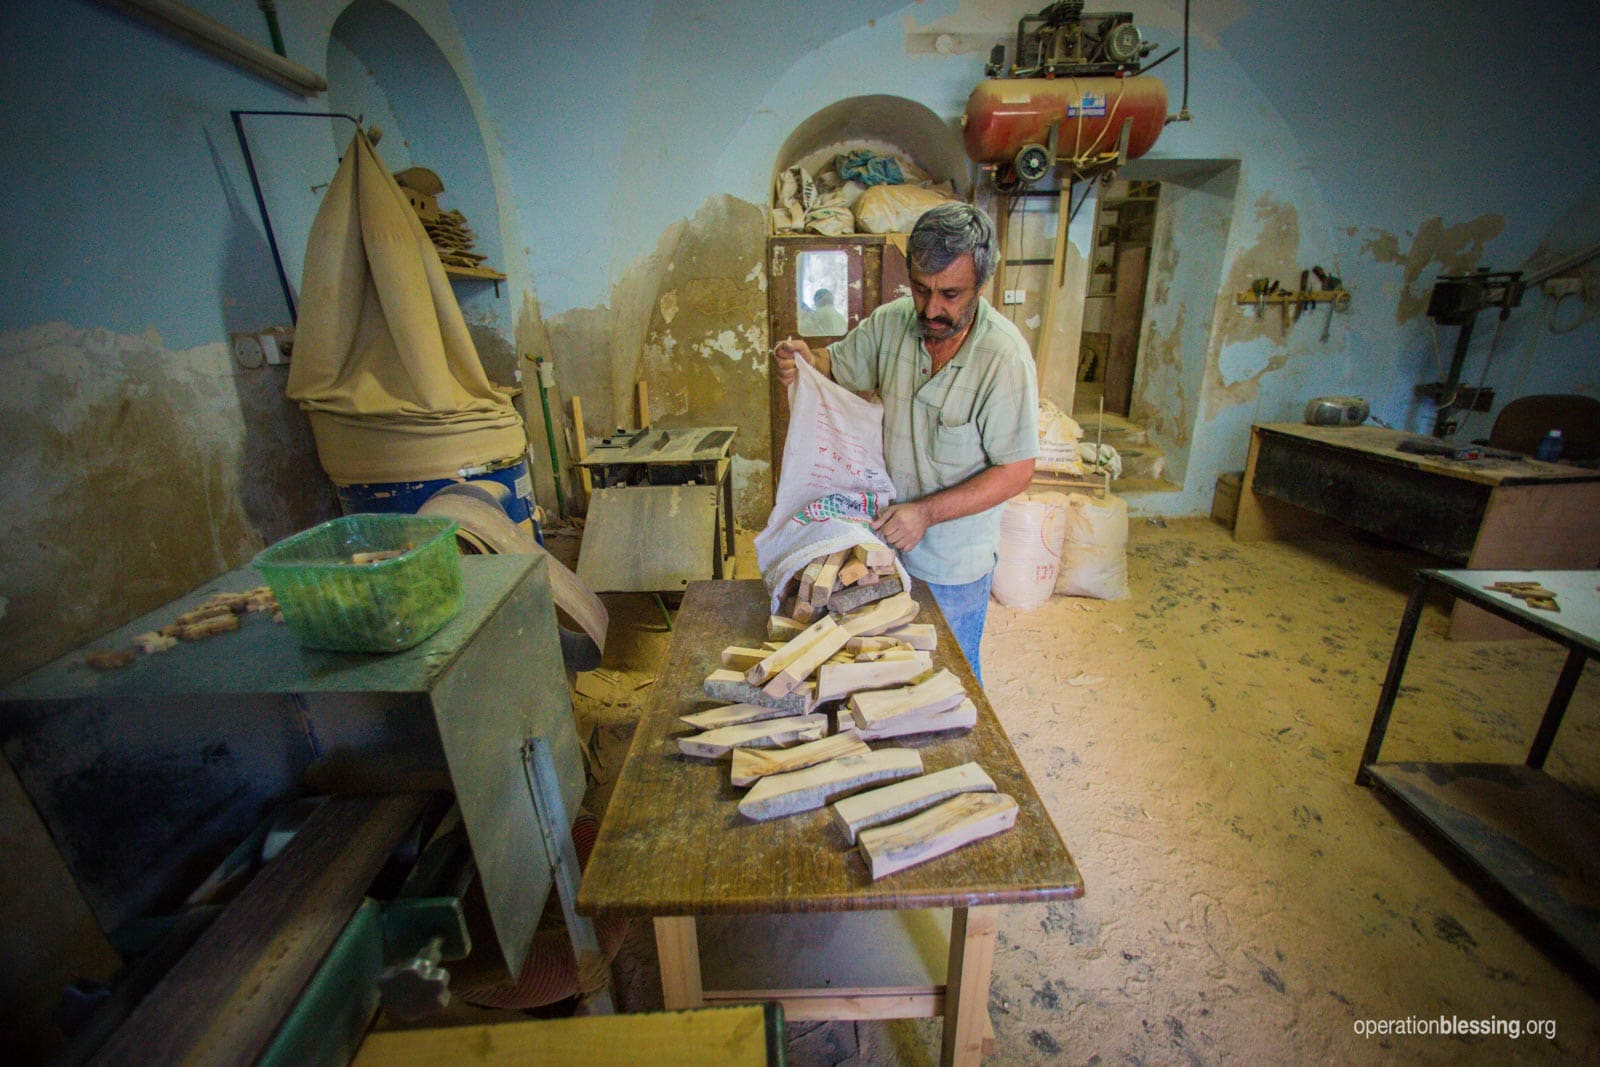 Joseph lays out wood to work in his shop.